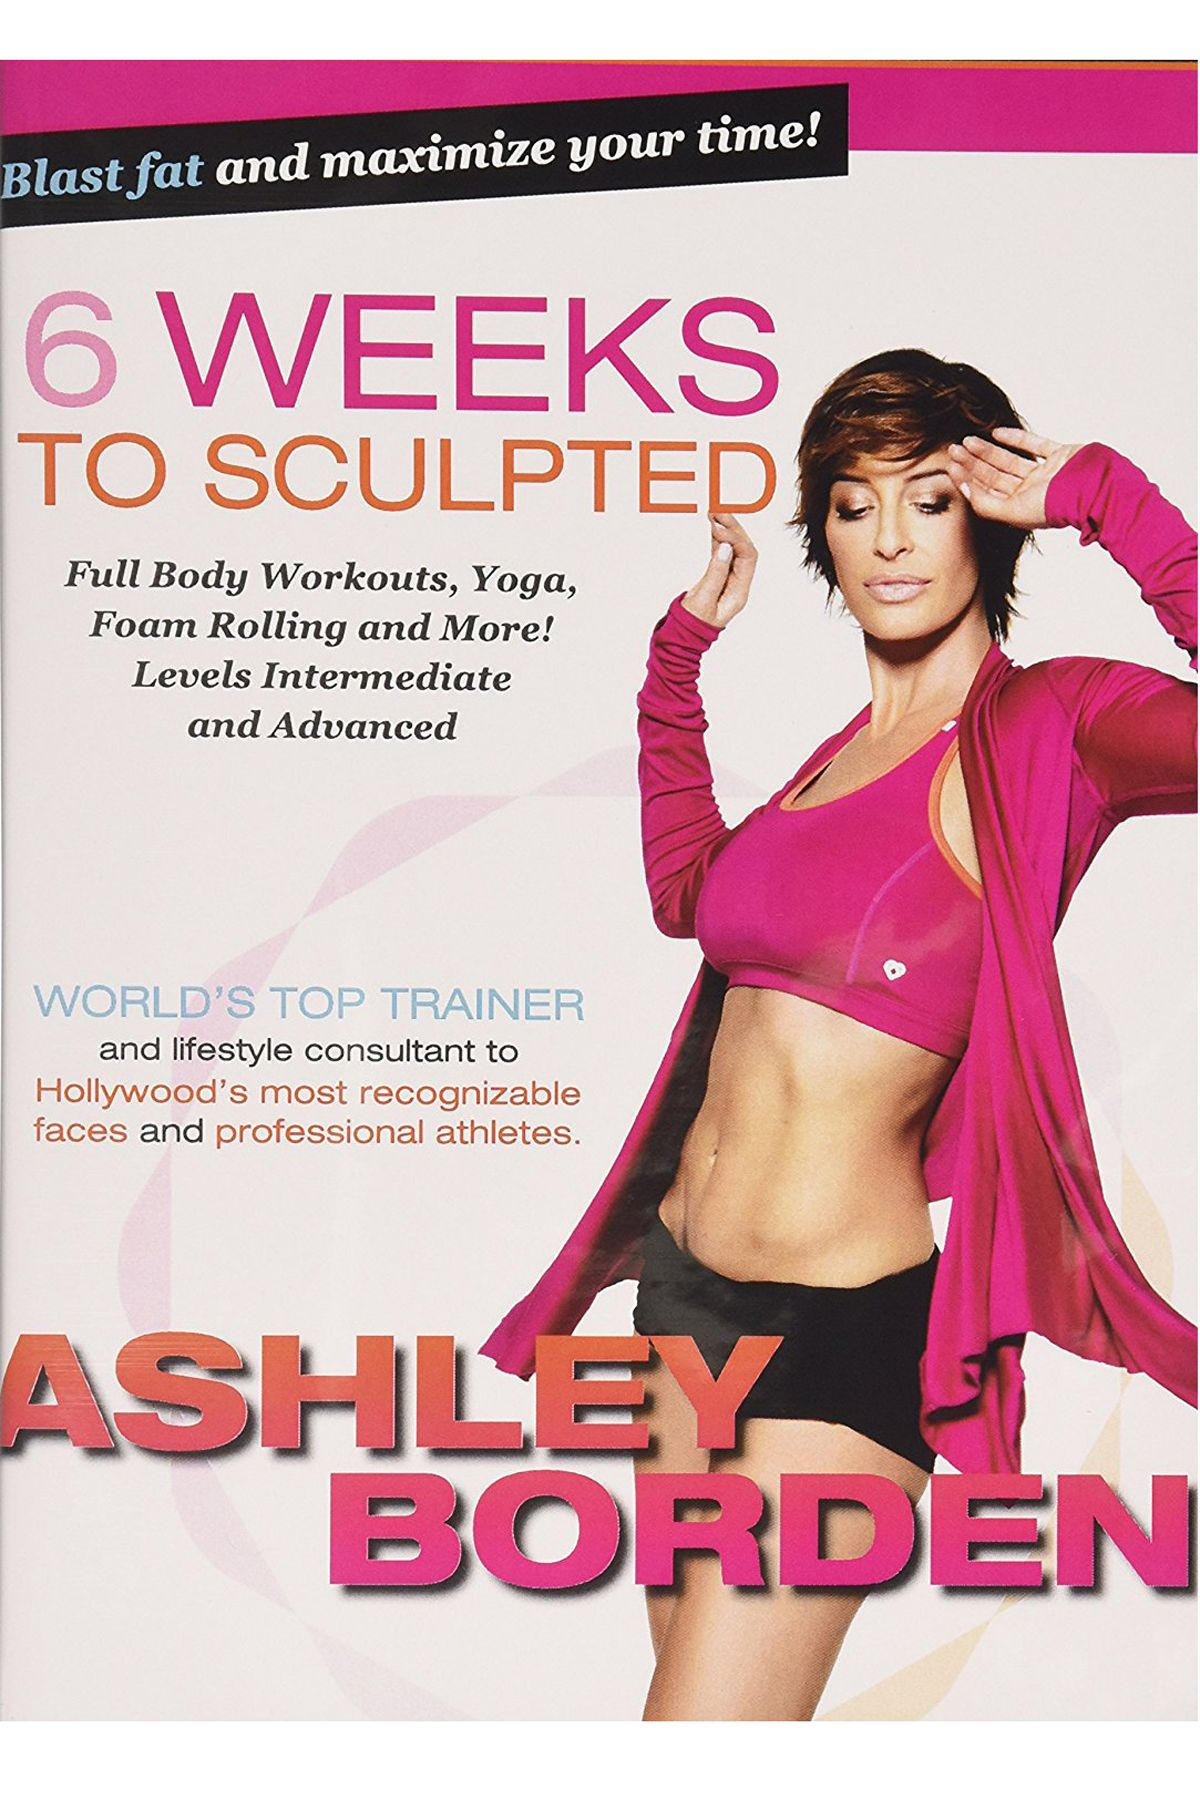 aebcda9eed 35 Best Workout DVDs - Exercise Videos - Woman s Day